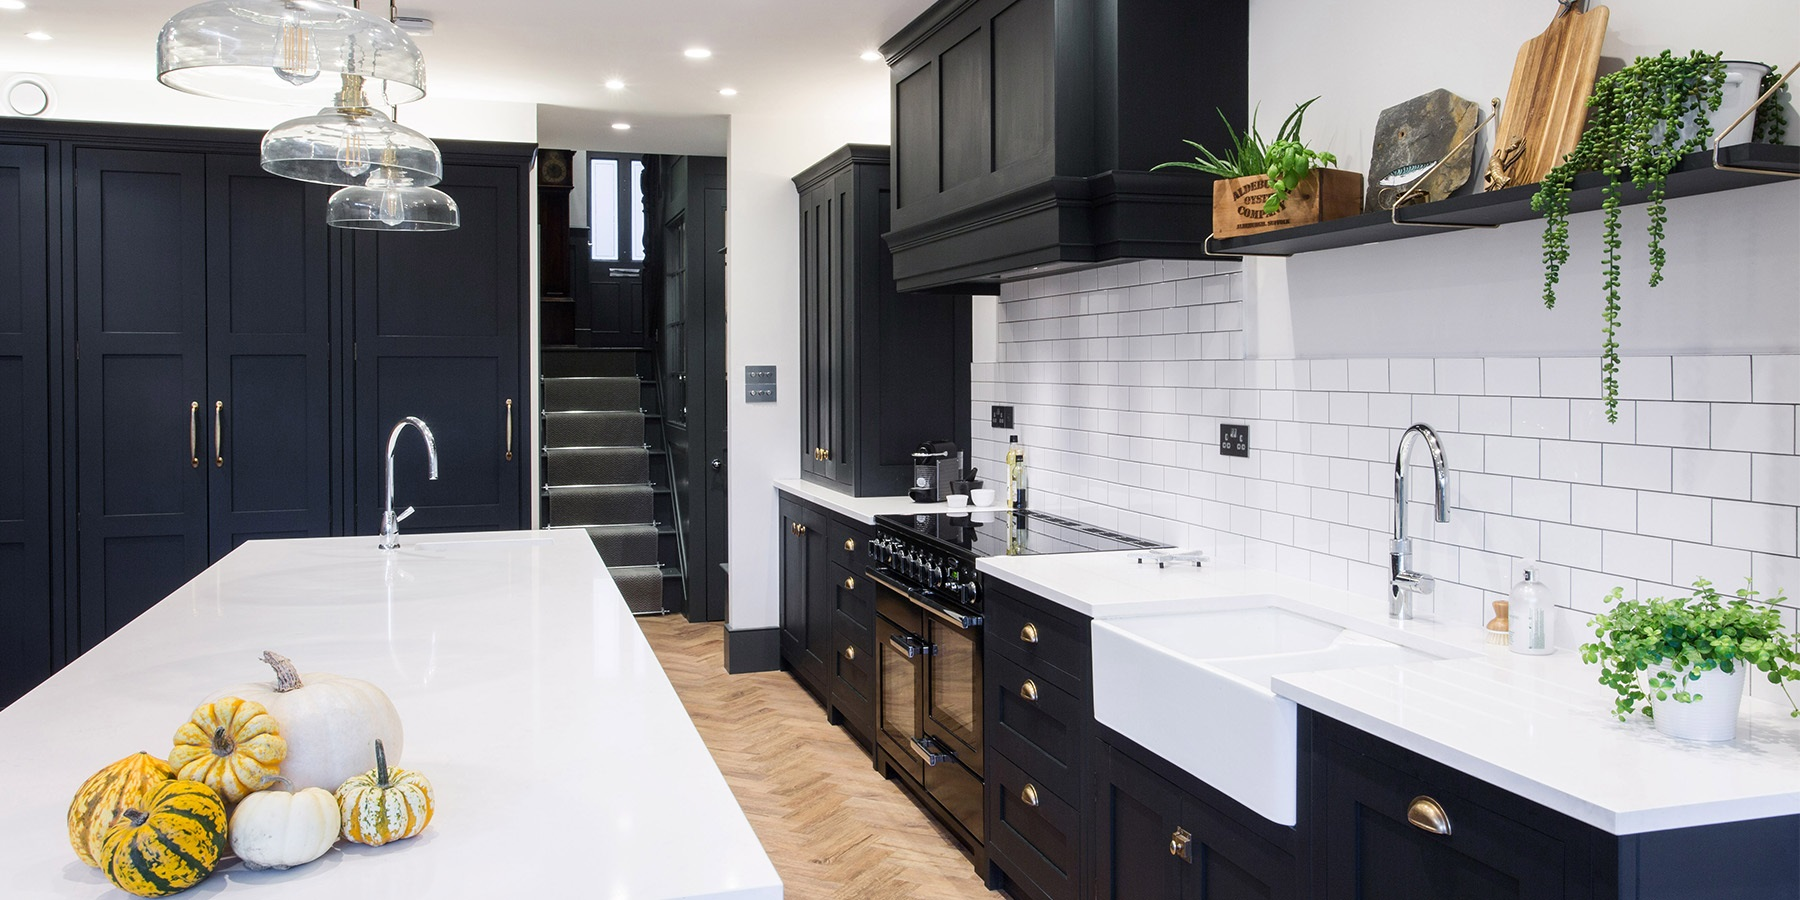 Nautical Themed Industrial Style Shaker Kitchen - Burlanes handmade shaker kitchen with white worktops, contrasting shaker tiles and beautiful greenery.